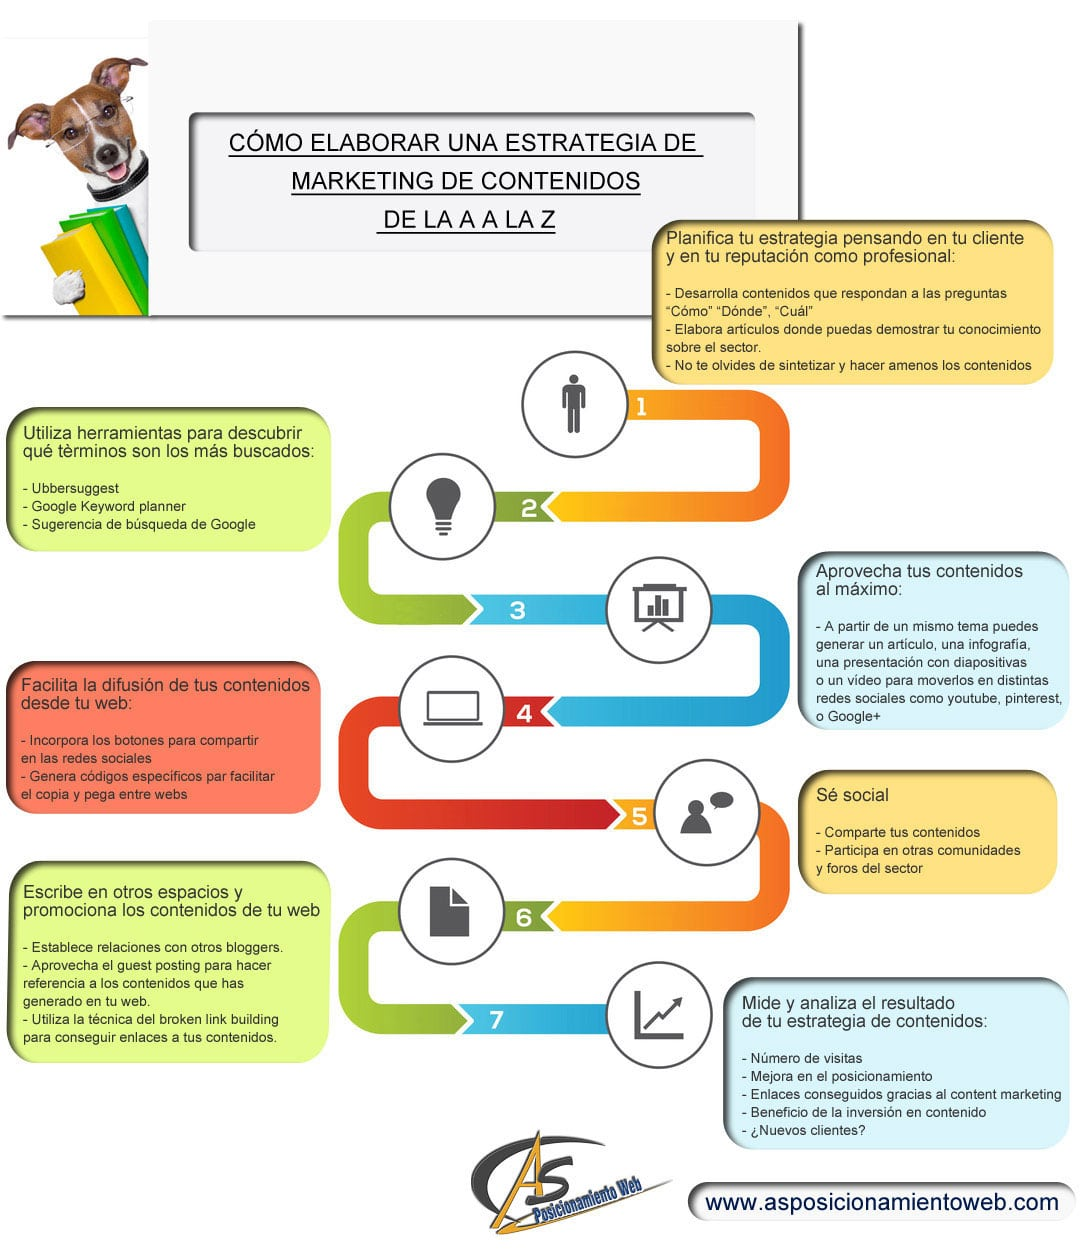 SEO y Marketing de contenidos